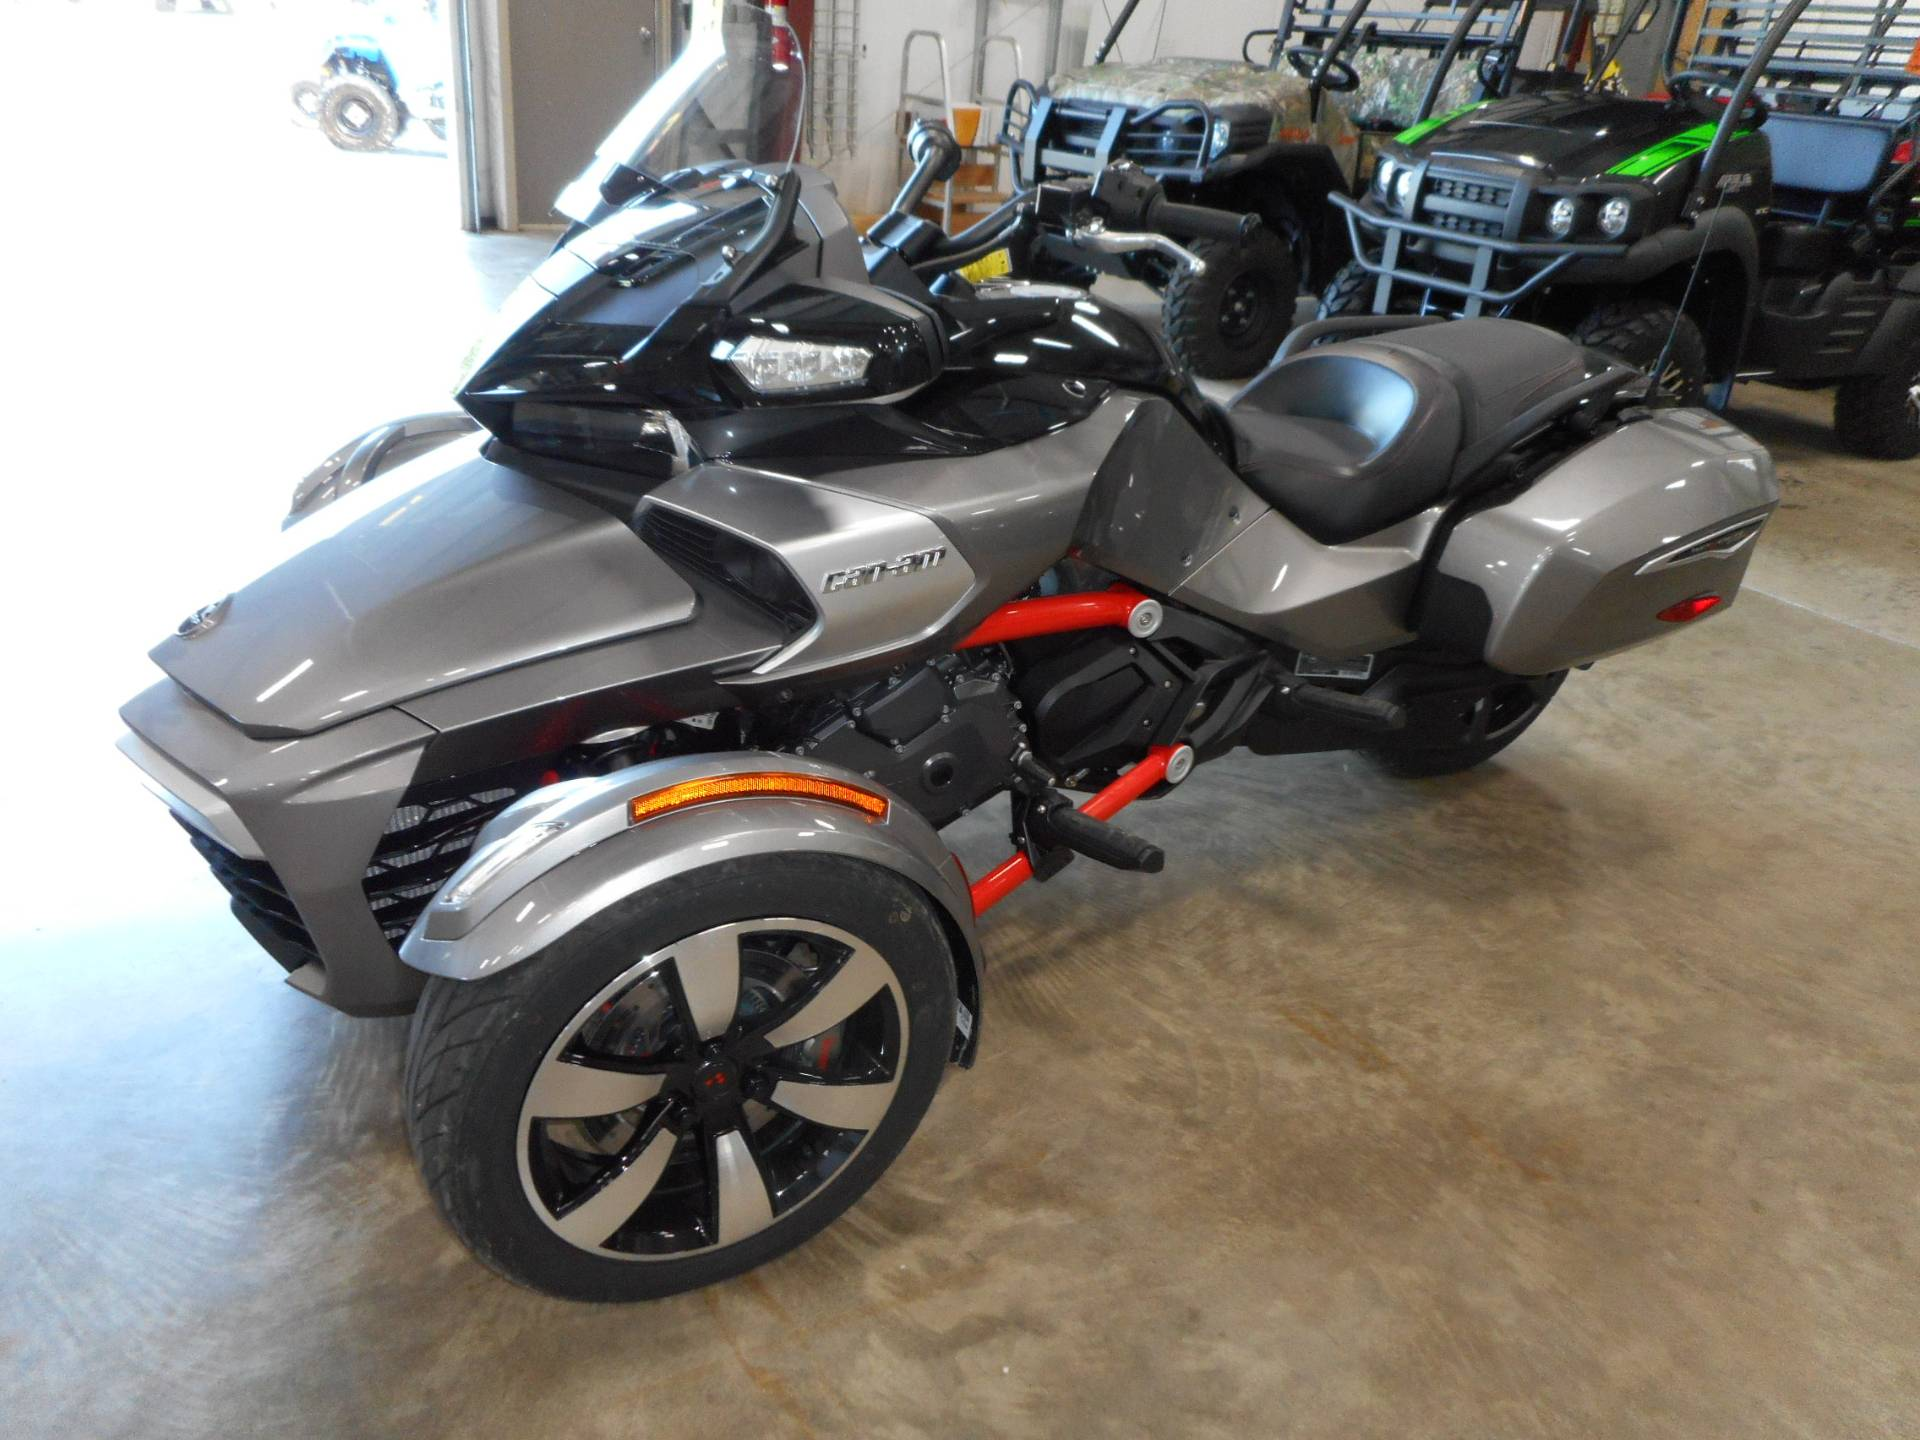 2016 Can-Am Spyder F3-T SM6 w/ Audio System in Belvidere, Illinois - Photo 1